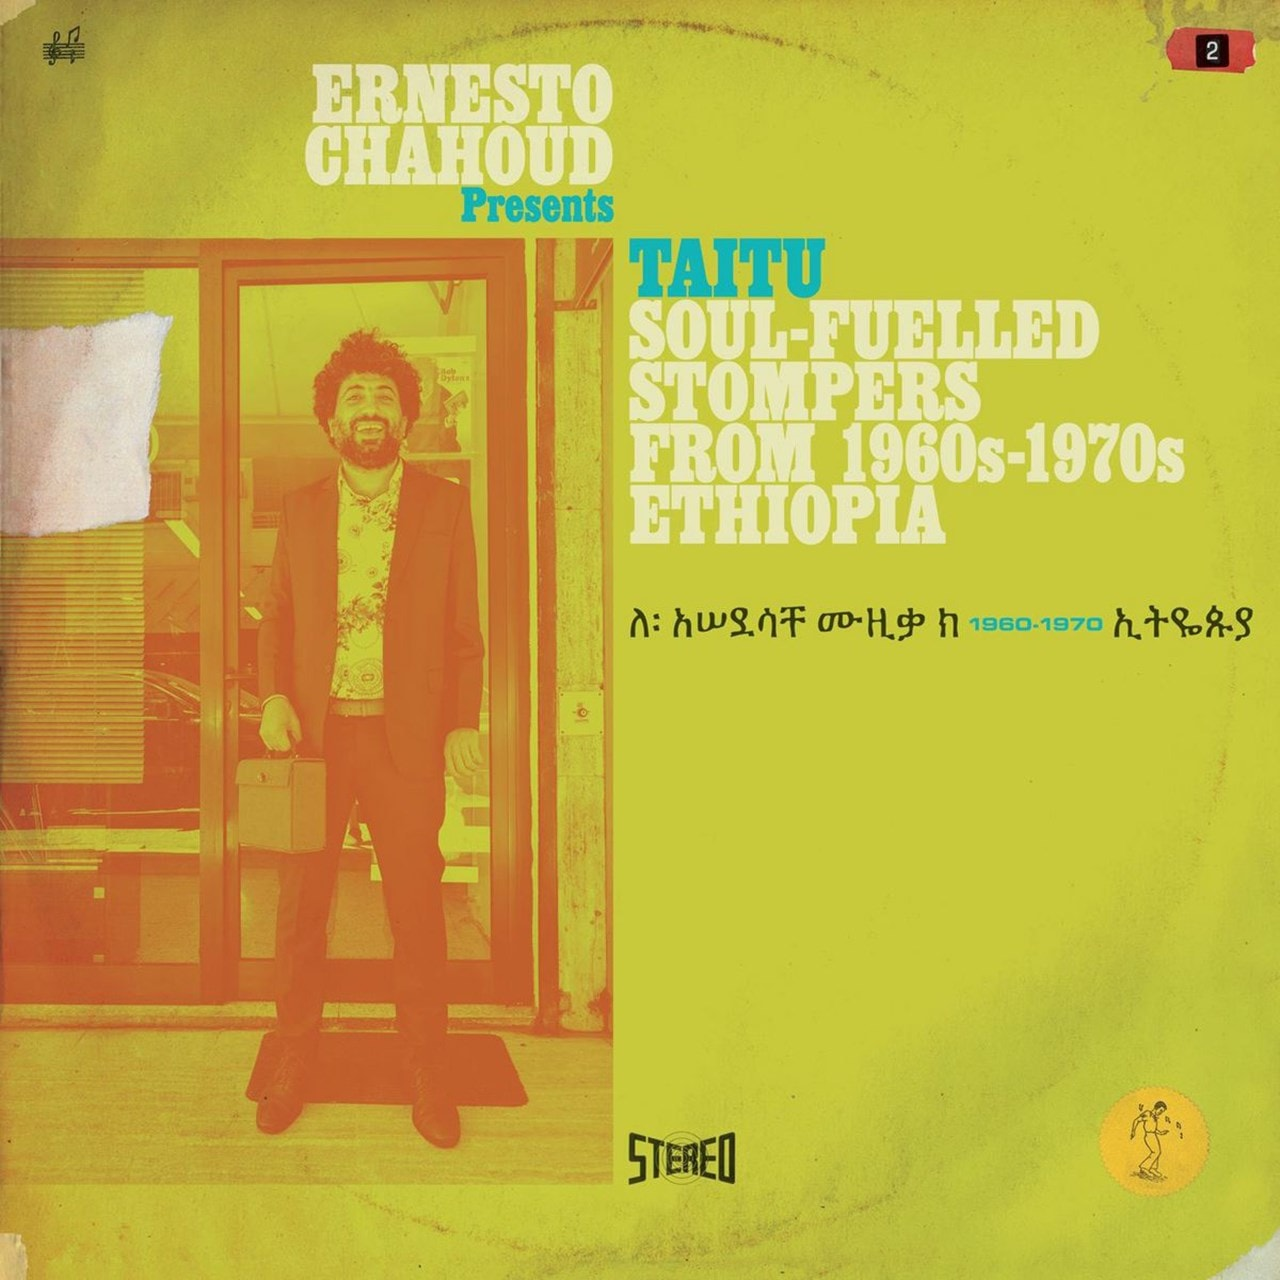 Ernesto Chahoud Presents Taitu: Soul-filled Stompers Form 1960s-1970s Ethiopia - 1